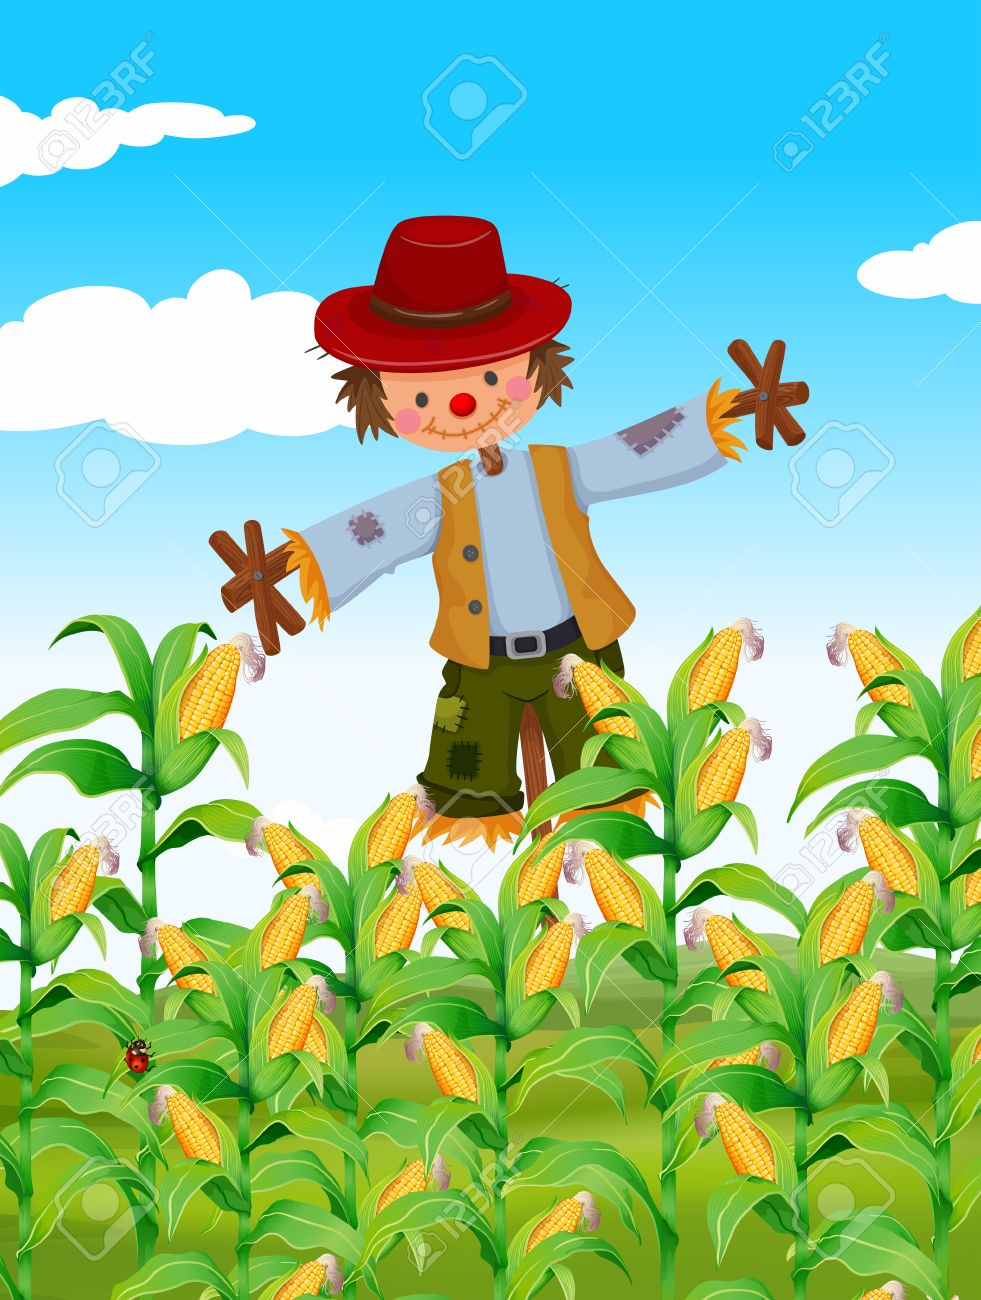 scarecrow standing in corn field illustration royalty free cliparts rh 123rf com Corn Field Drawing corn field clipart black and white